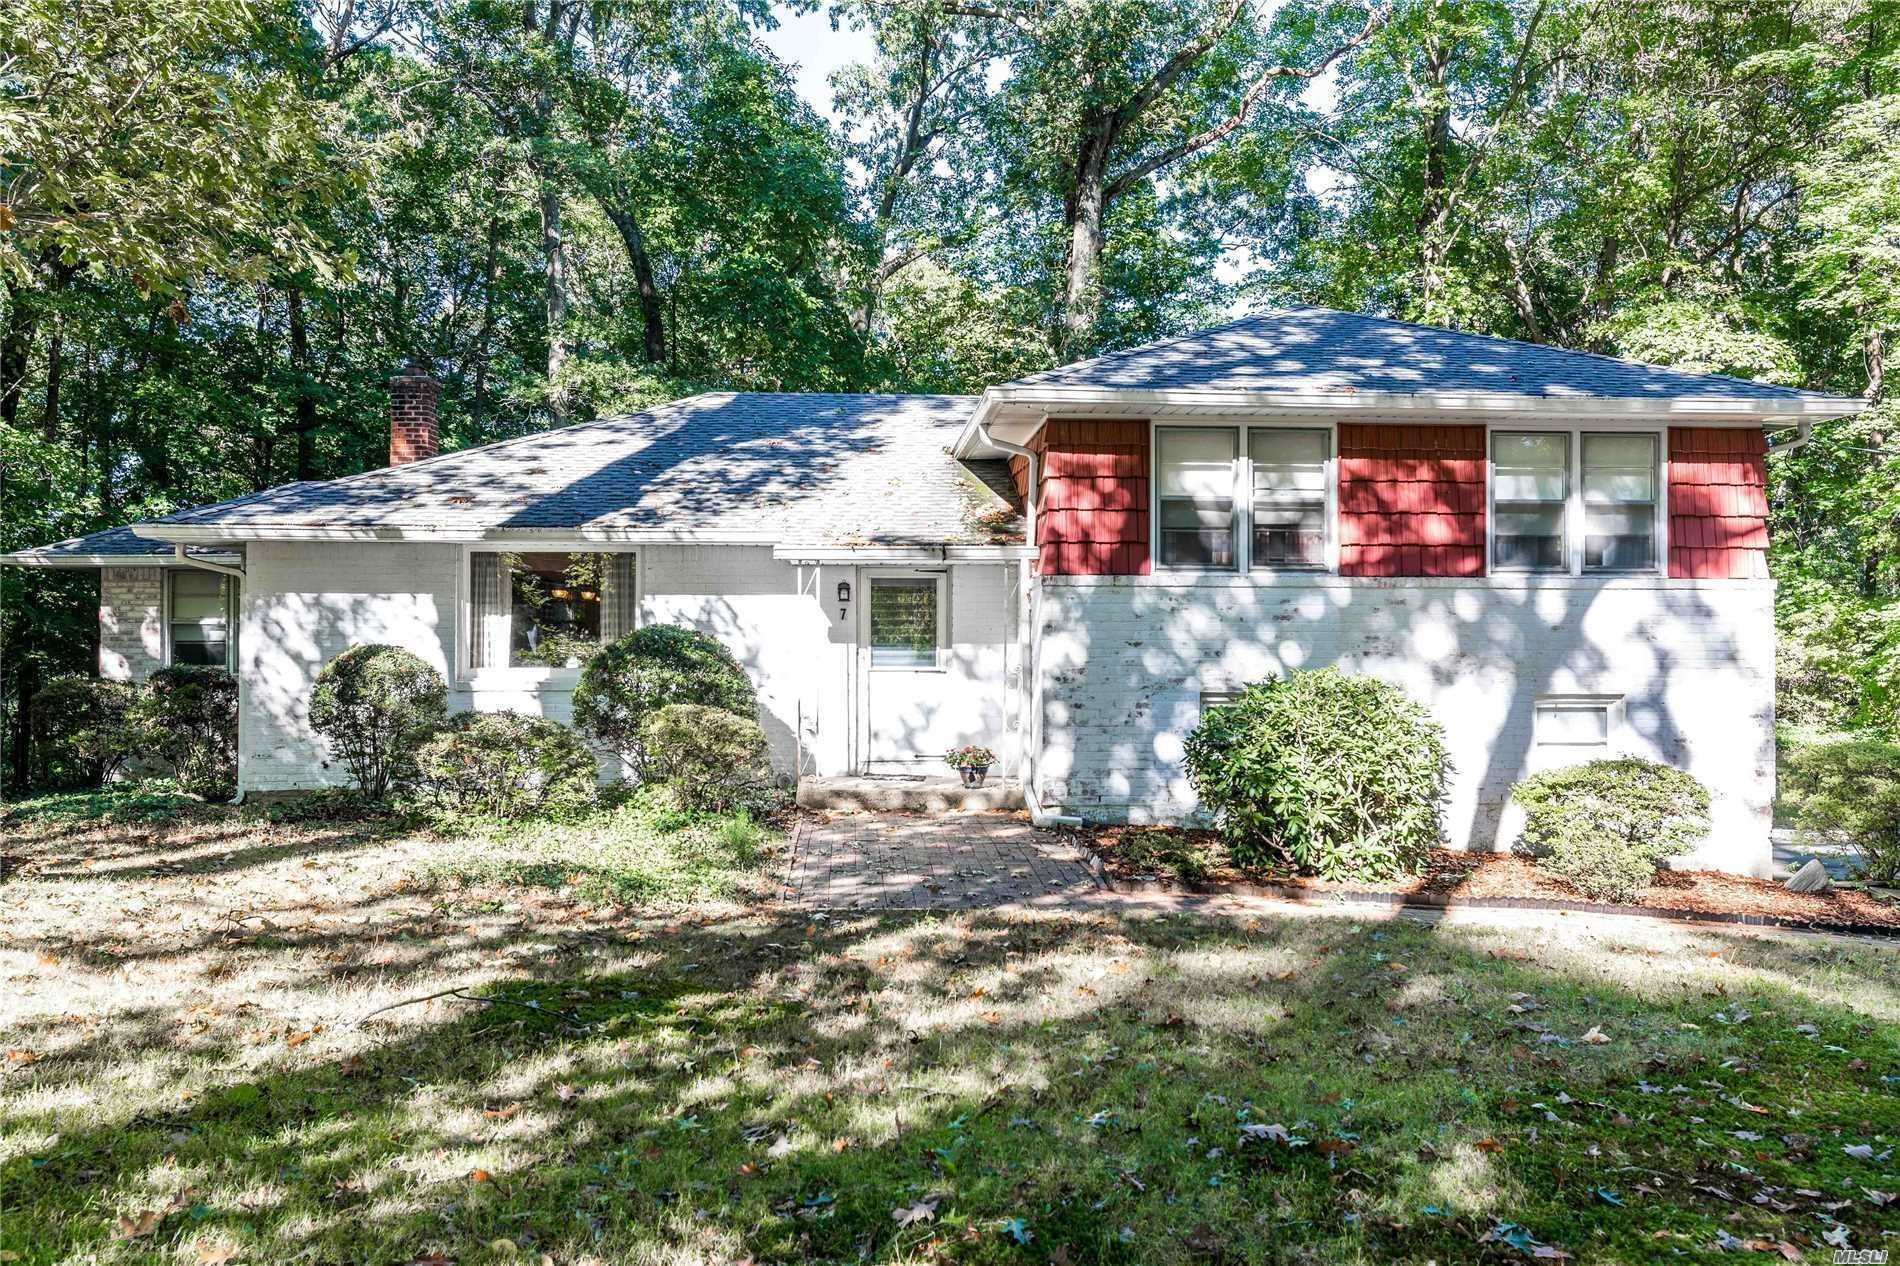 Great Opportunity To Live In West Hills. This Split Level Home Is Located In Audobon Woods, South Huntington Sd#13. 3/4 Acres, Set Back Off Of Street. Quiet And Serene Neighborhood. Being Sold As Is Make It Your Own. Assessed Value Of $654, 000.